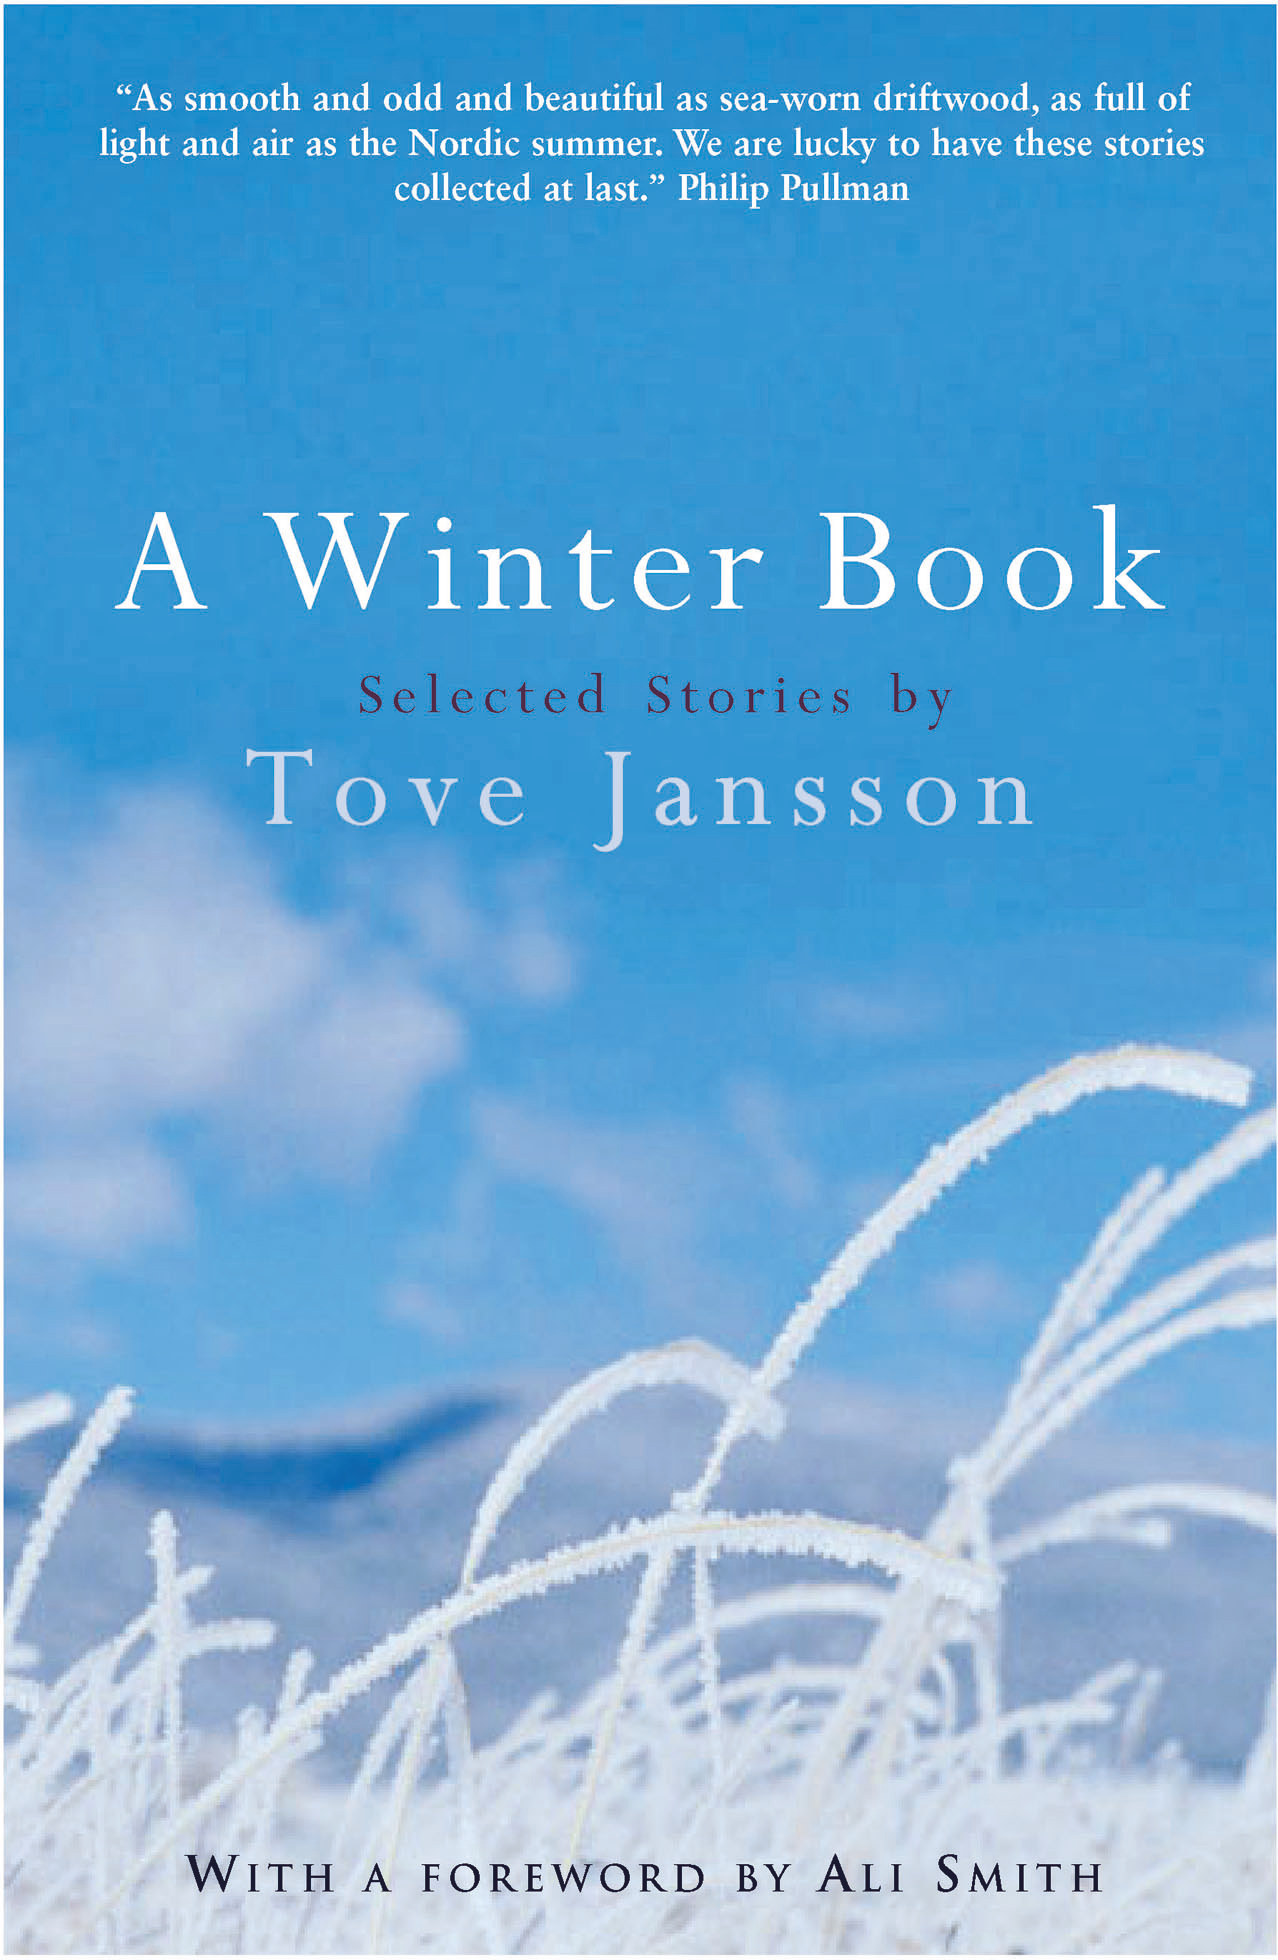 Tove-Jansson-A-Winter-Book-Sort-of-Books.jpg